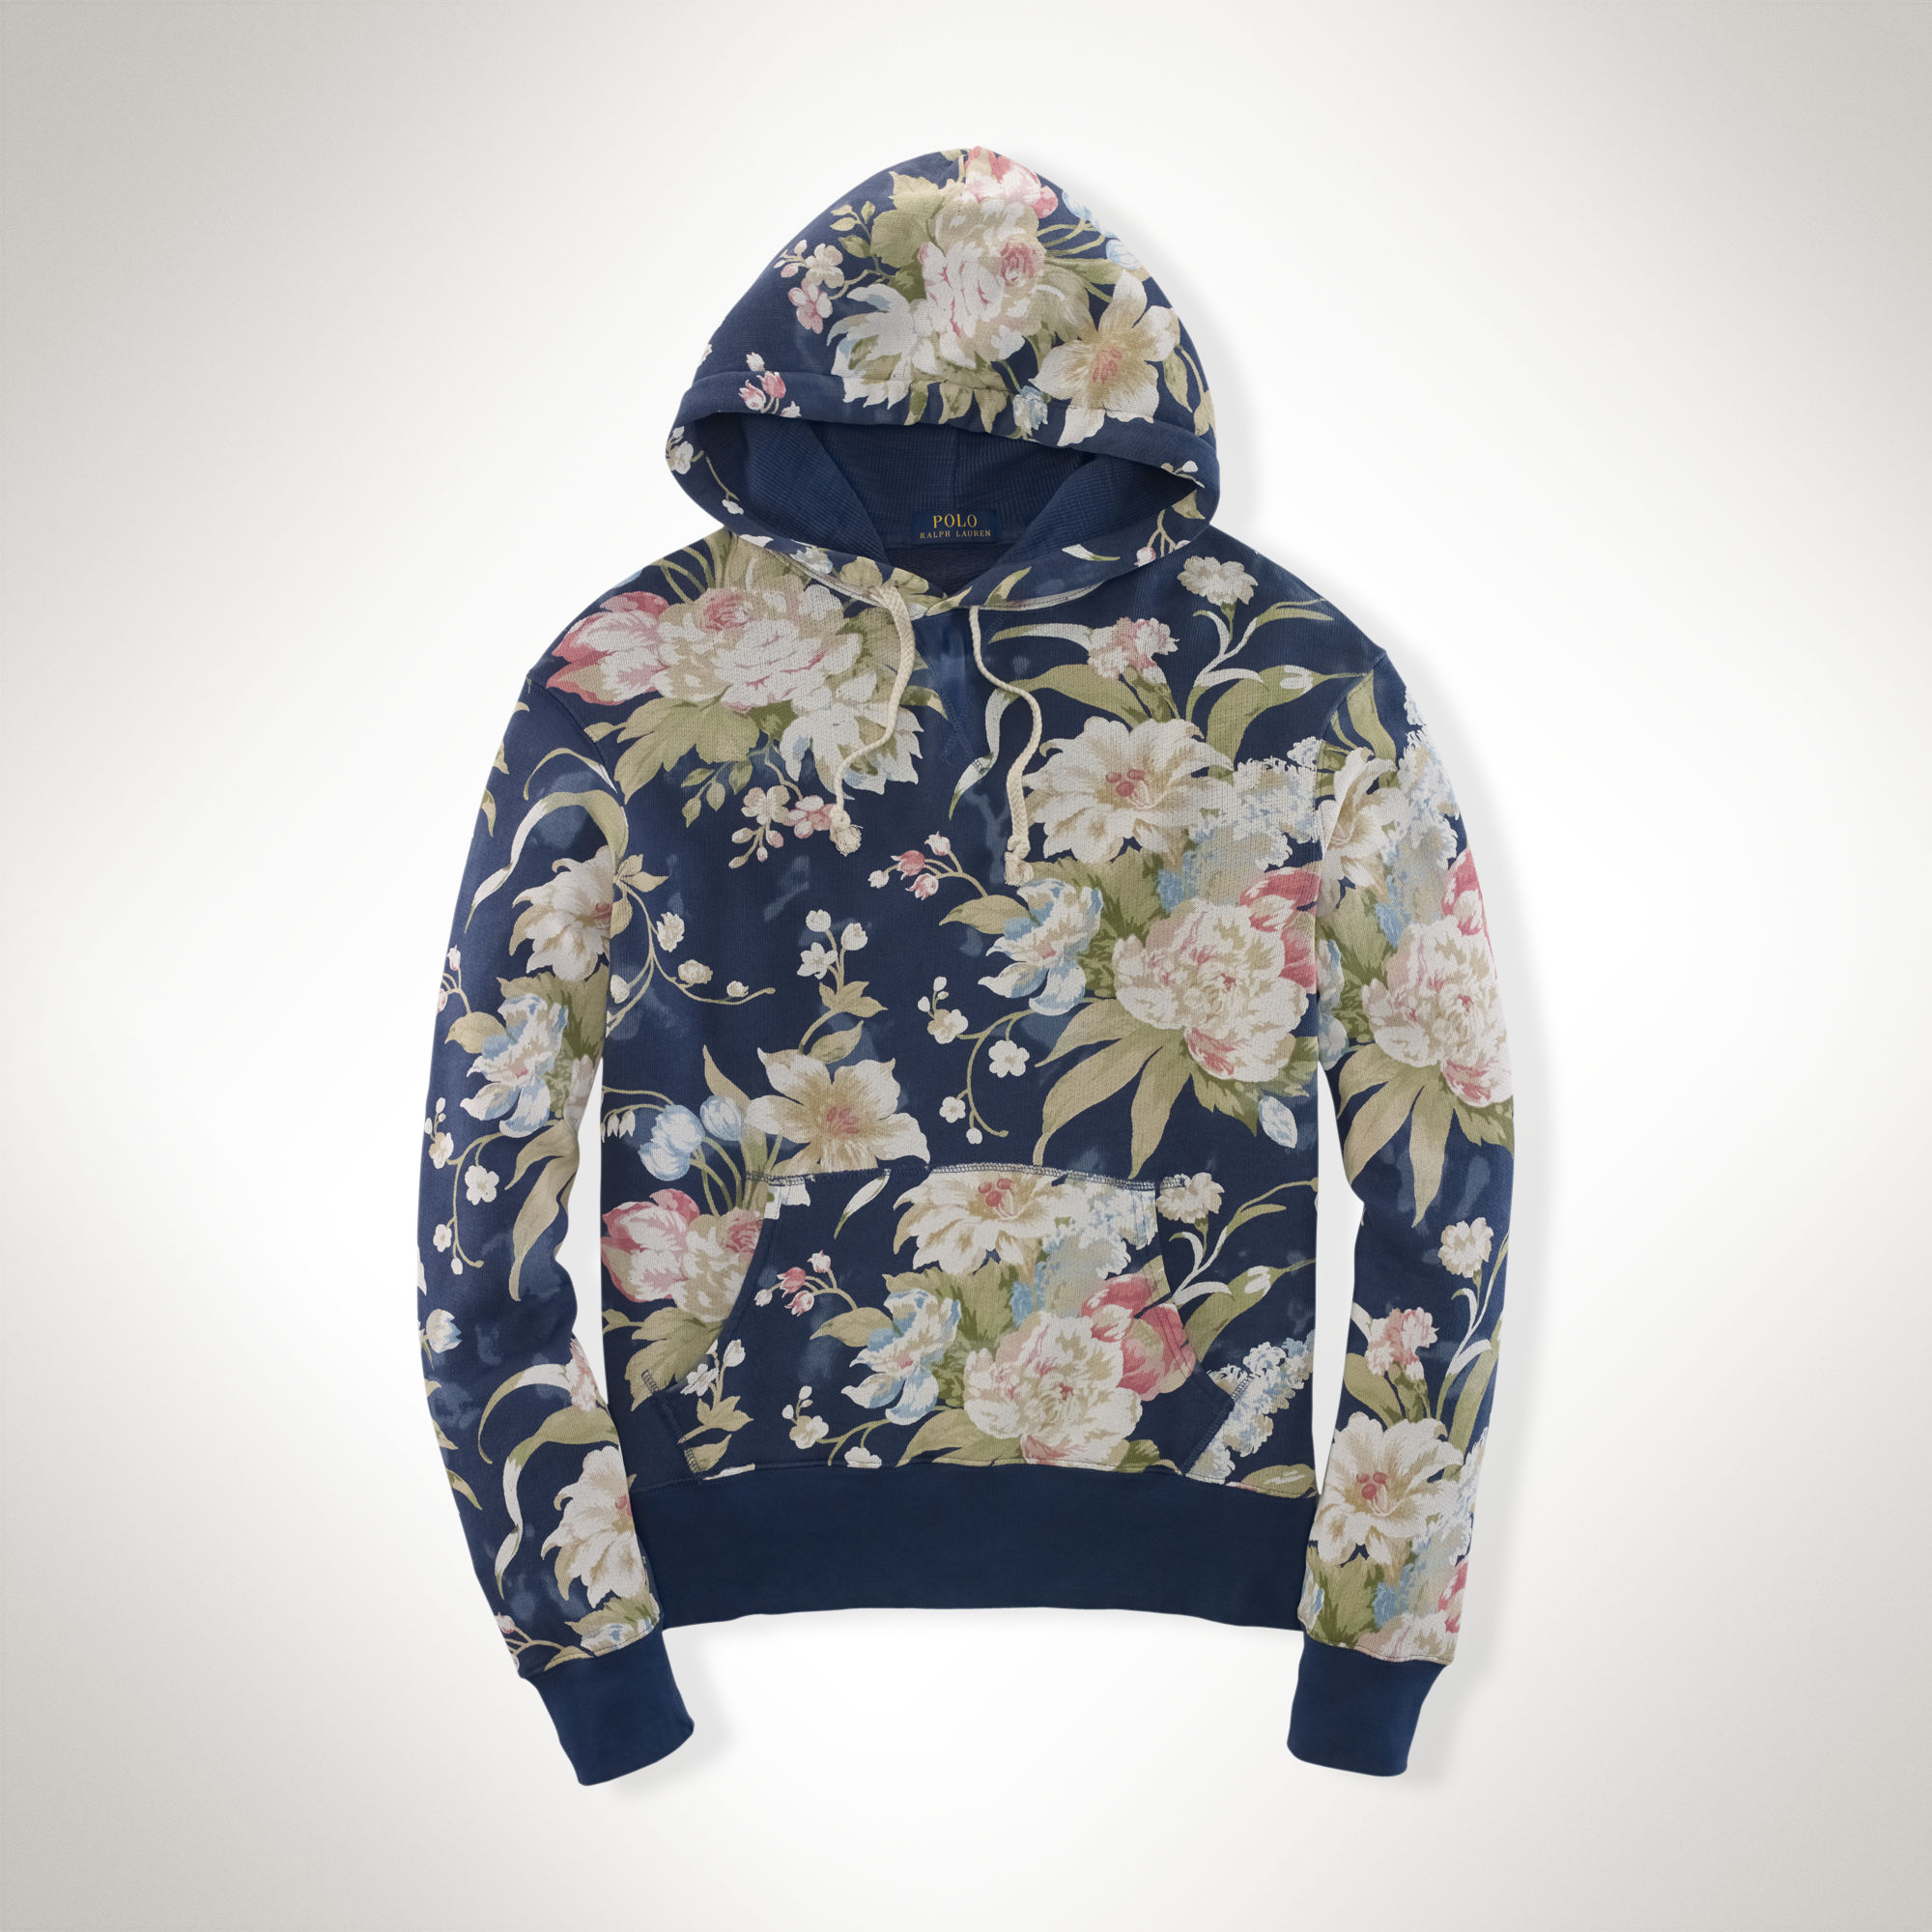 c680e97d76 ... germany polo ralph lauren floral cotton terry hoodie in blue for men  lyst c671a 15bd1